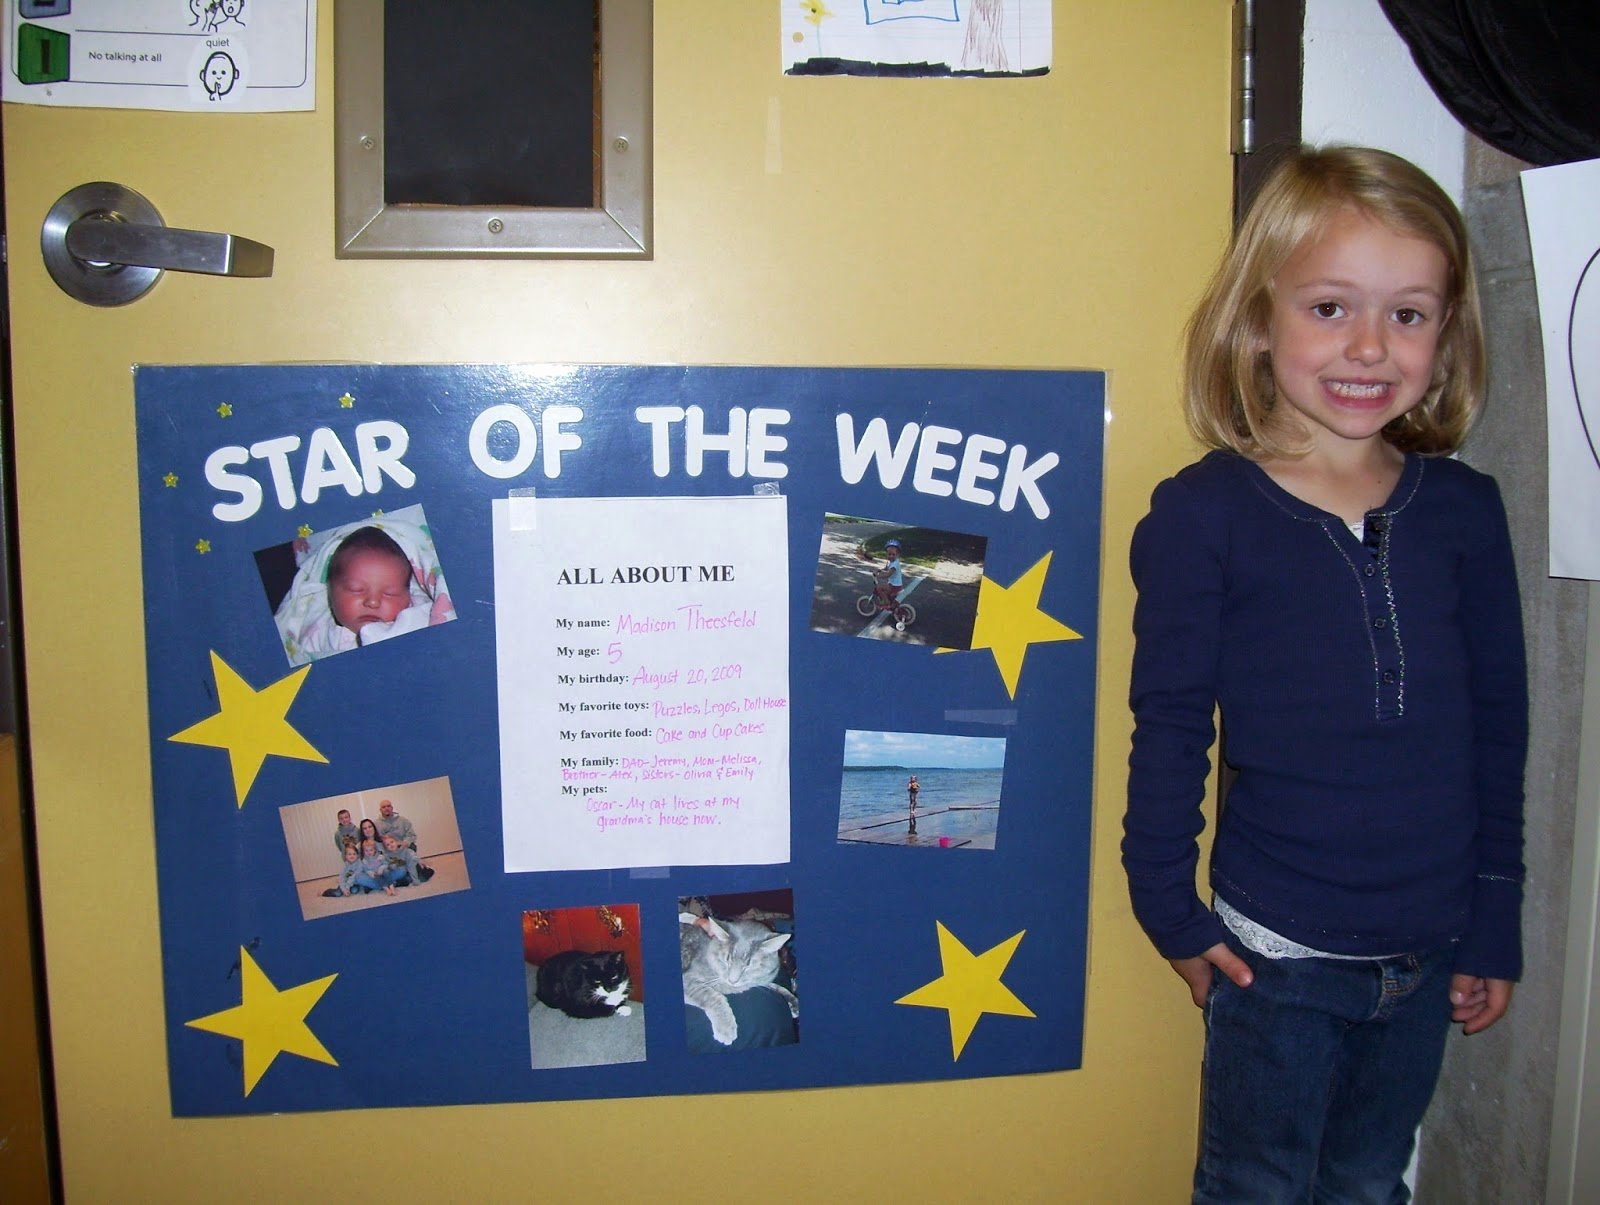 Star Of the Week Poster Printable Luxury Mrs Deitering S Readiness Kindergarten Class Celebrating